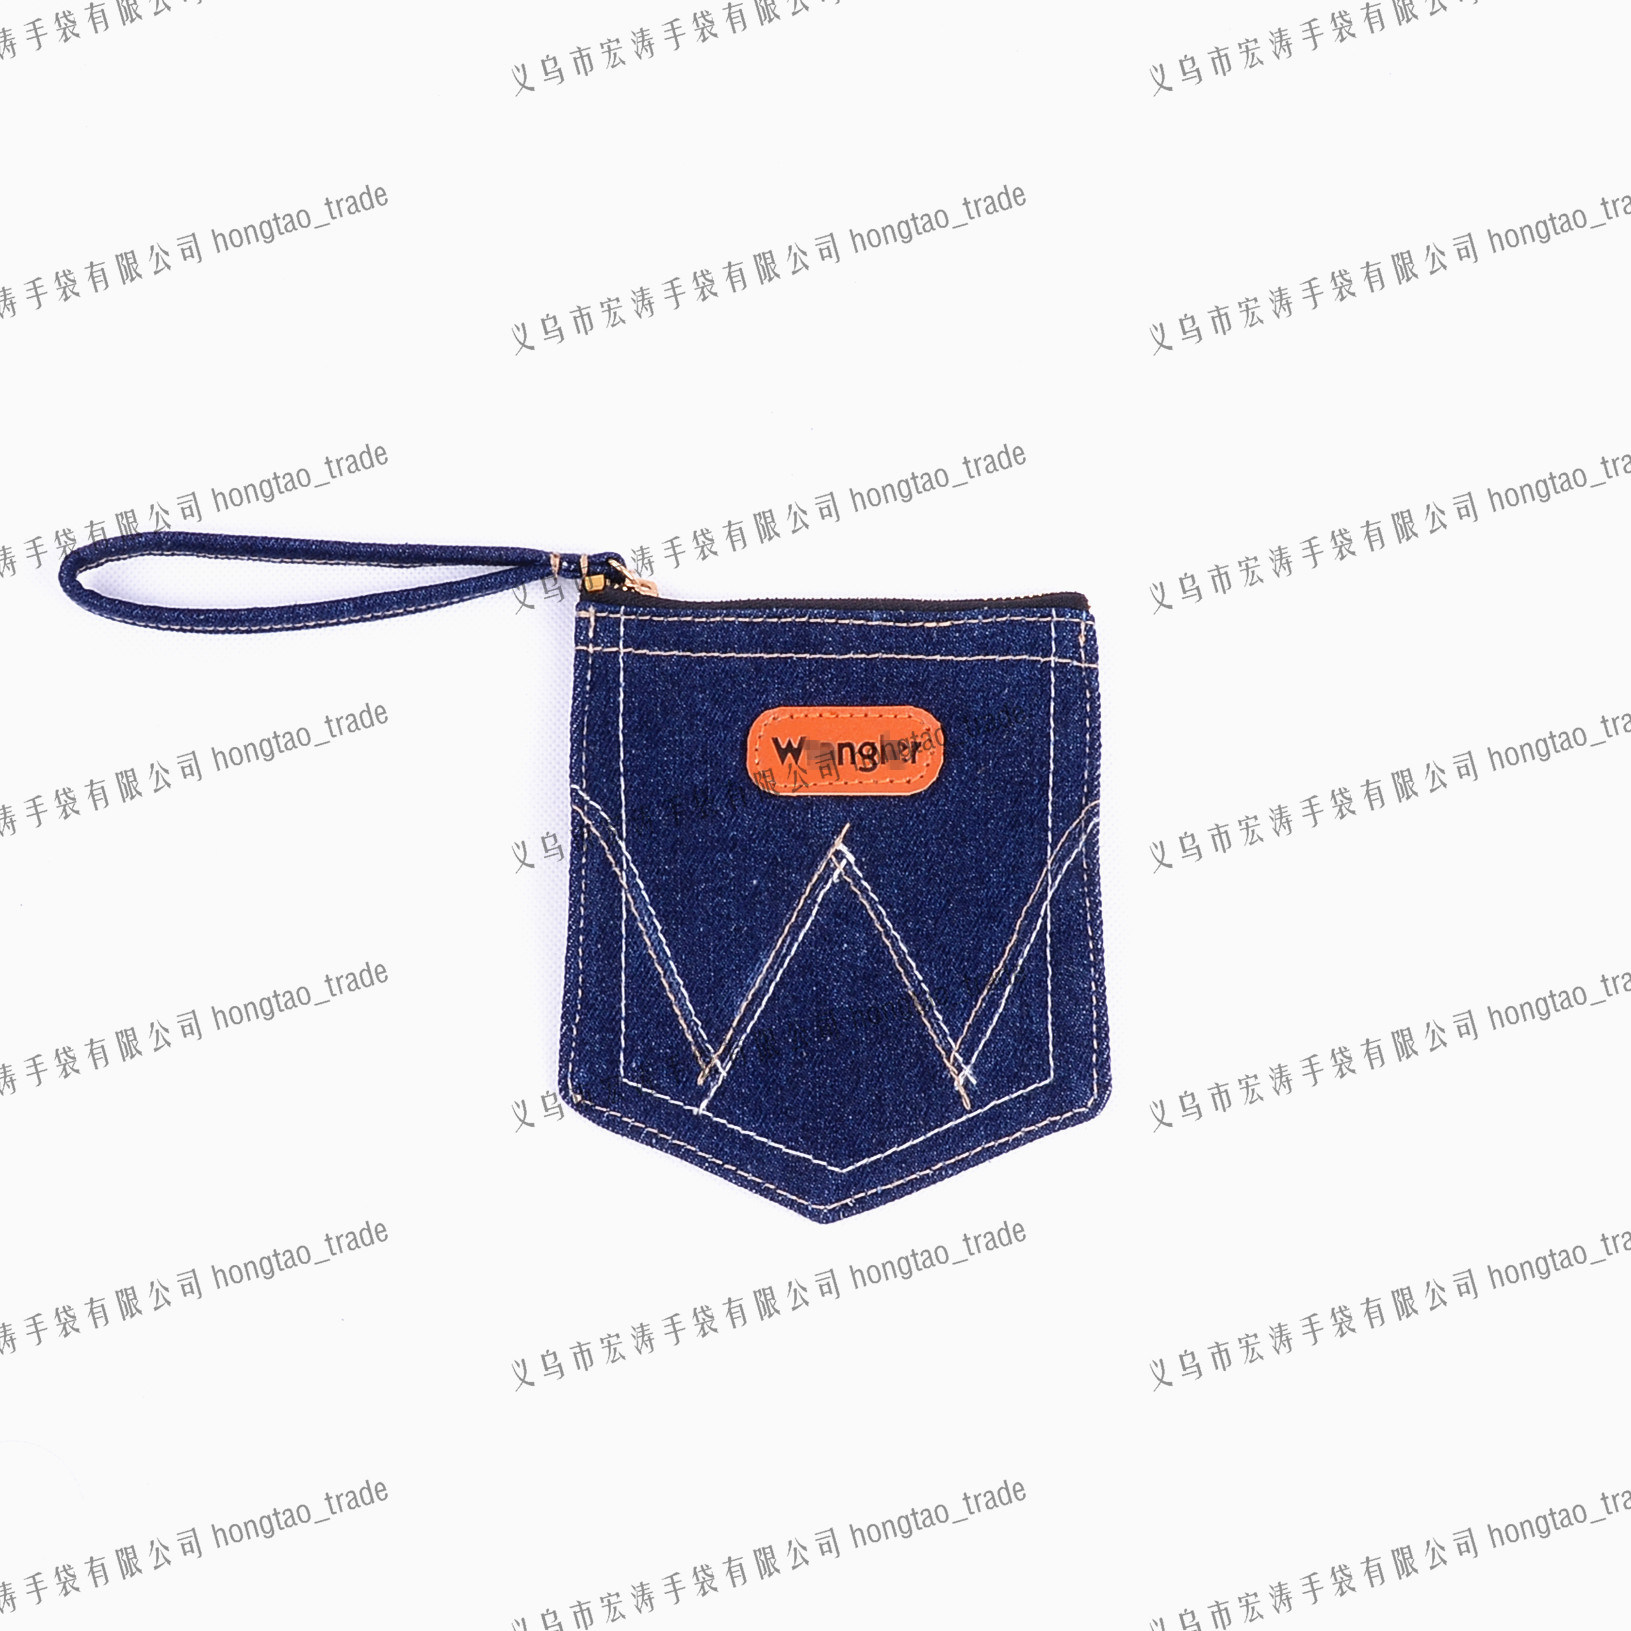 Denim Handbag with Handle Stamp Logo on PU Gift Promo Bag14oz Jean Pocket